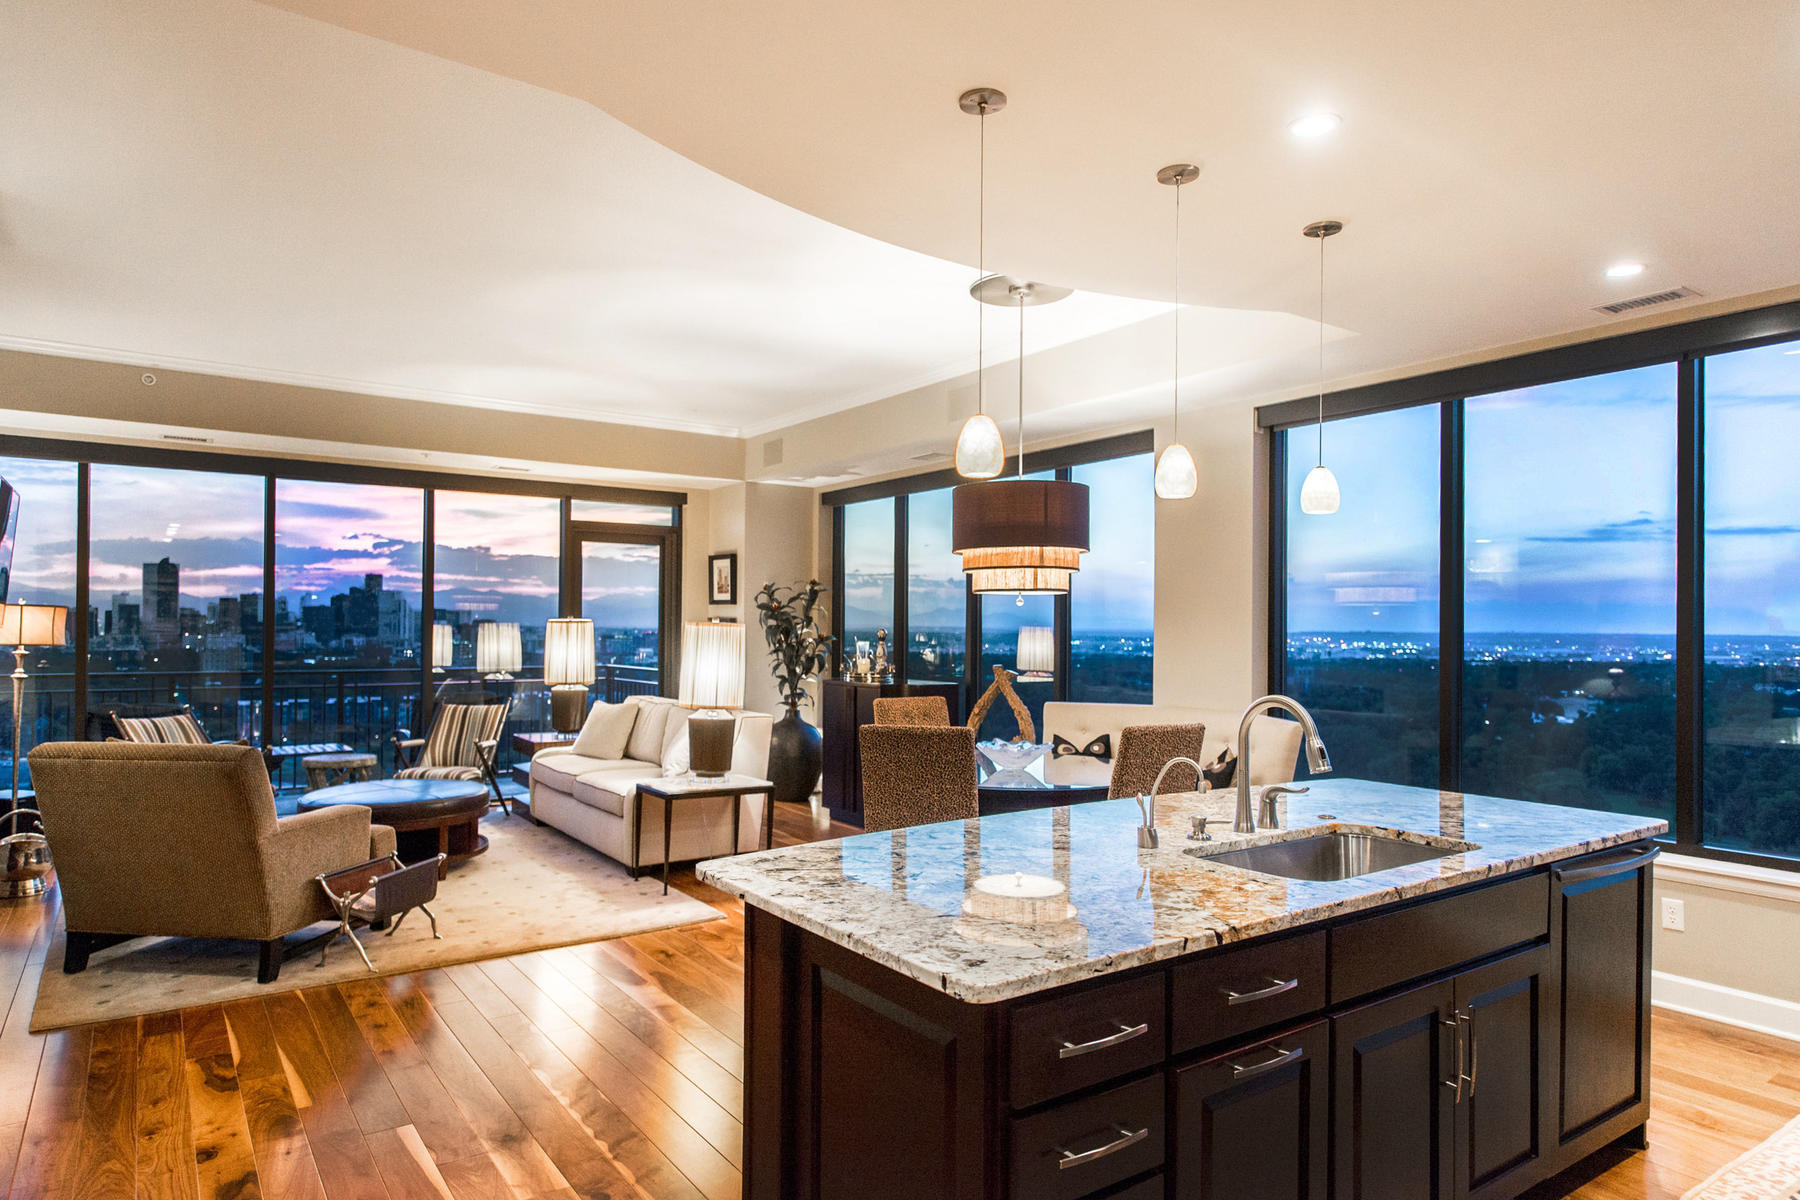 SOLD - Aug 2018 - $1,685,000